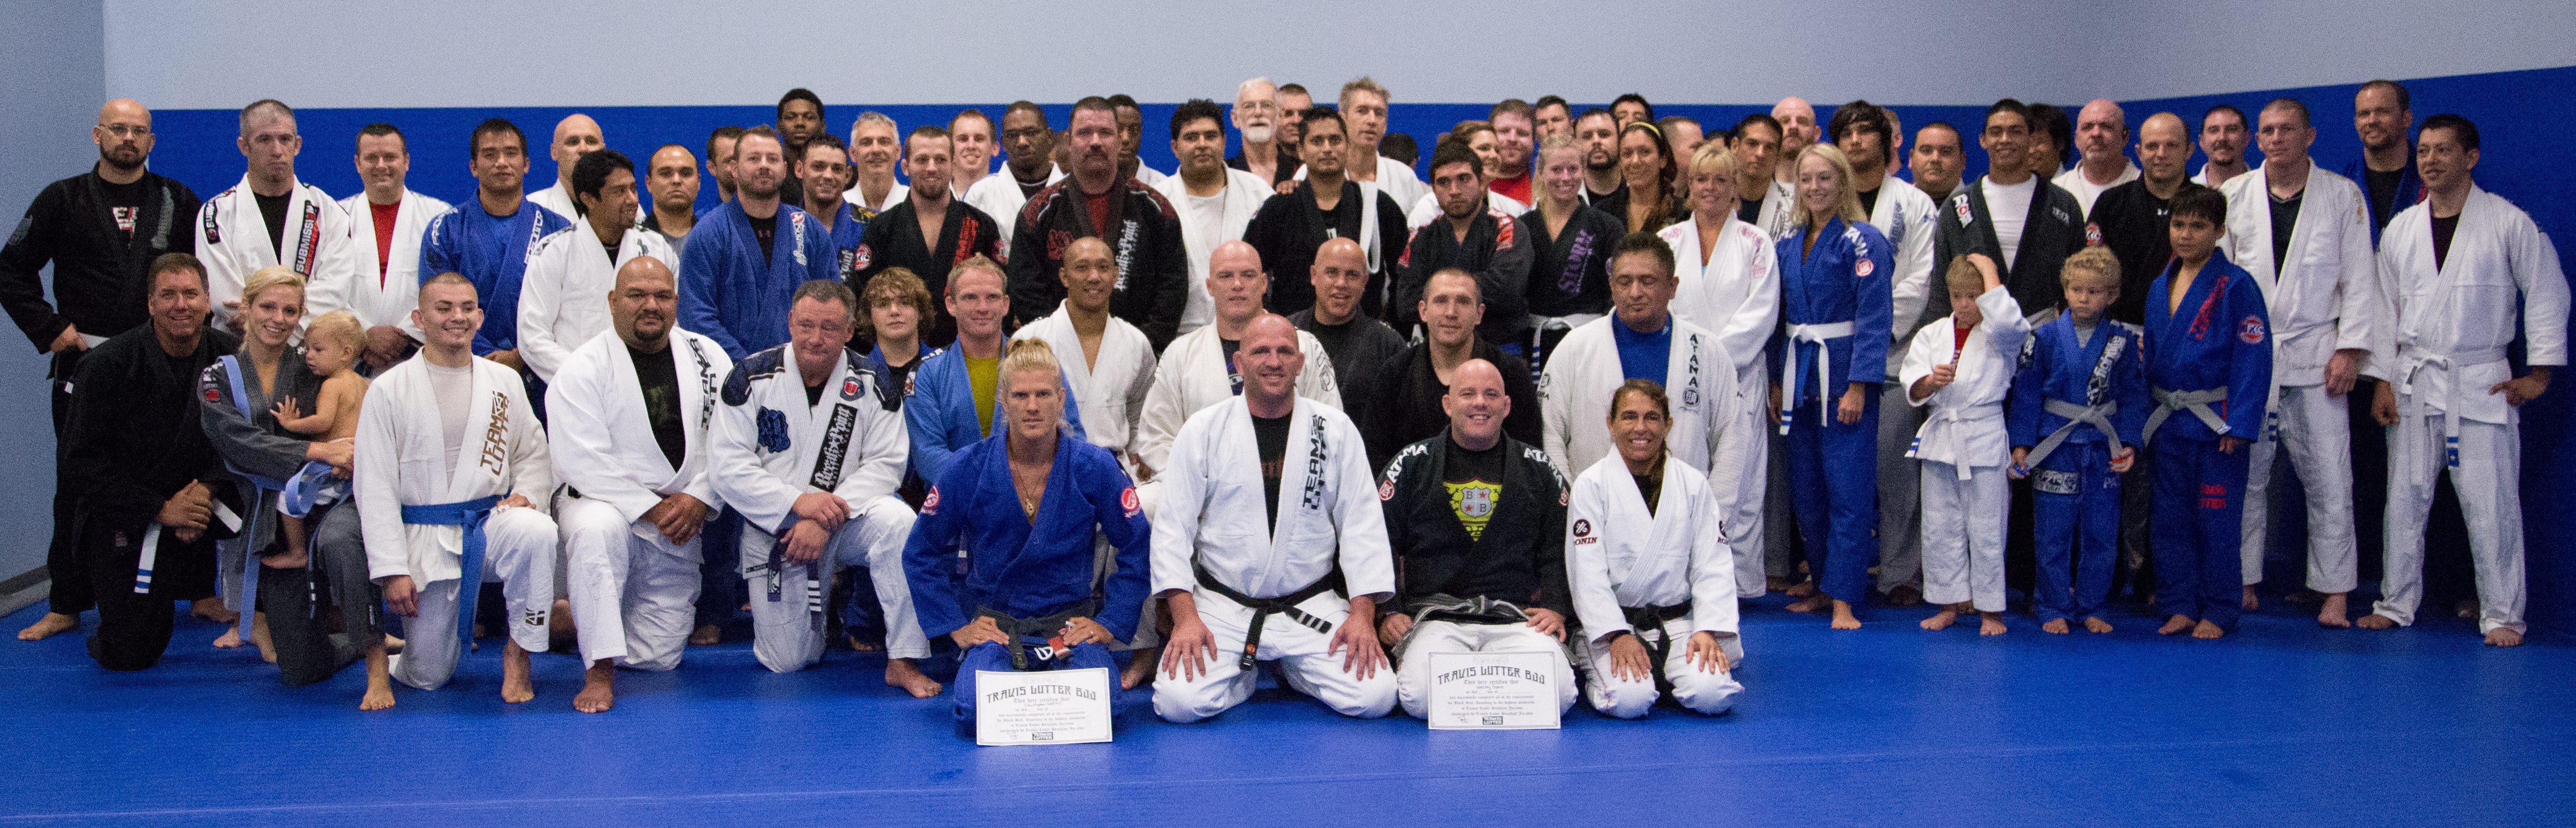 Spreading Jiu-Jitsu around the World